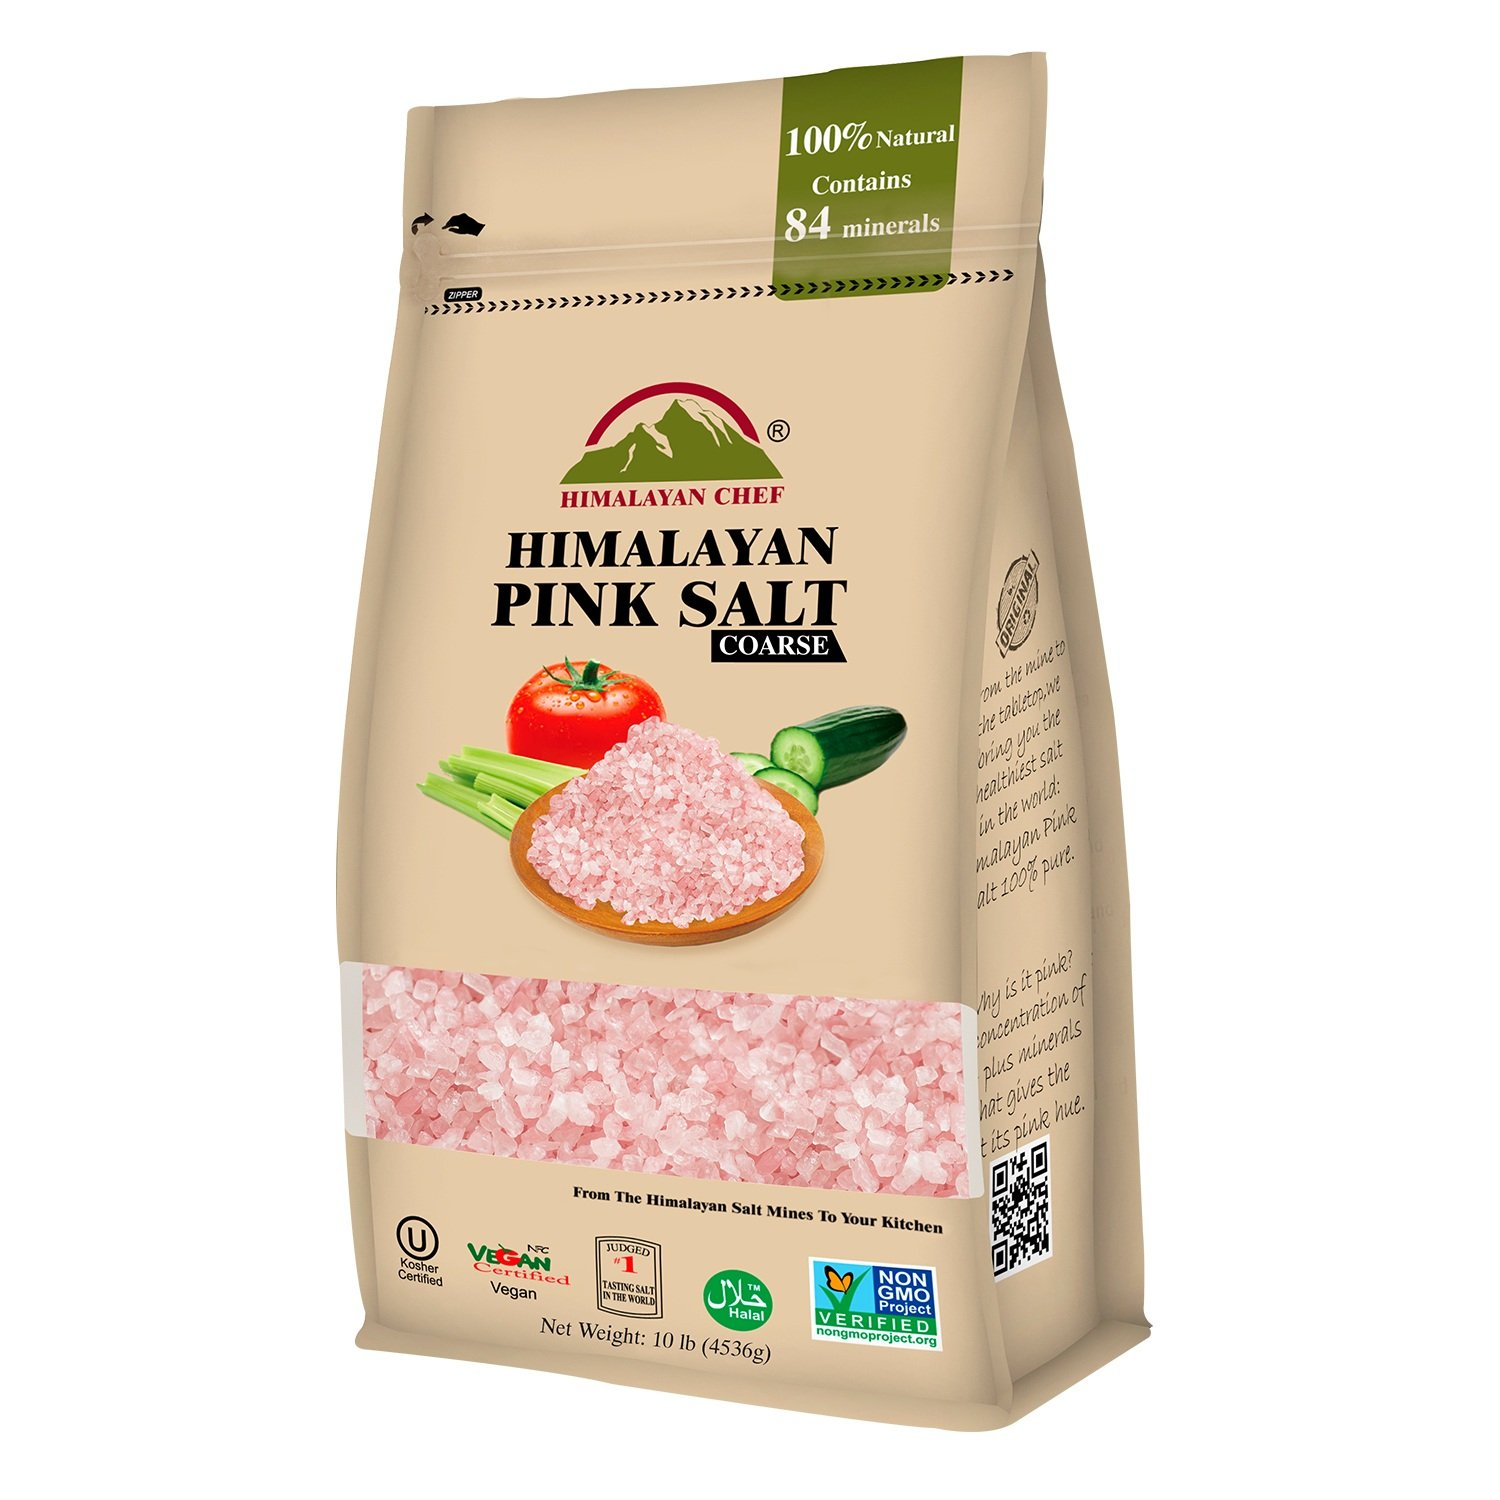 Himalayan Chef 100% Natural Himalayan Pink salt, 10 lbs Coarse Grains, Incredible Taste,Rich in Nutrients and Minerals to improve your Health